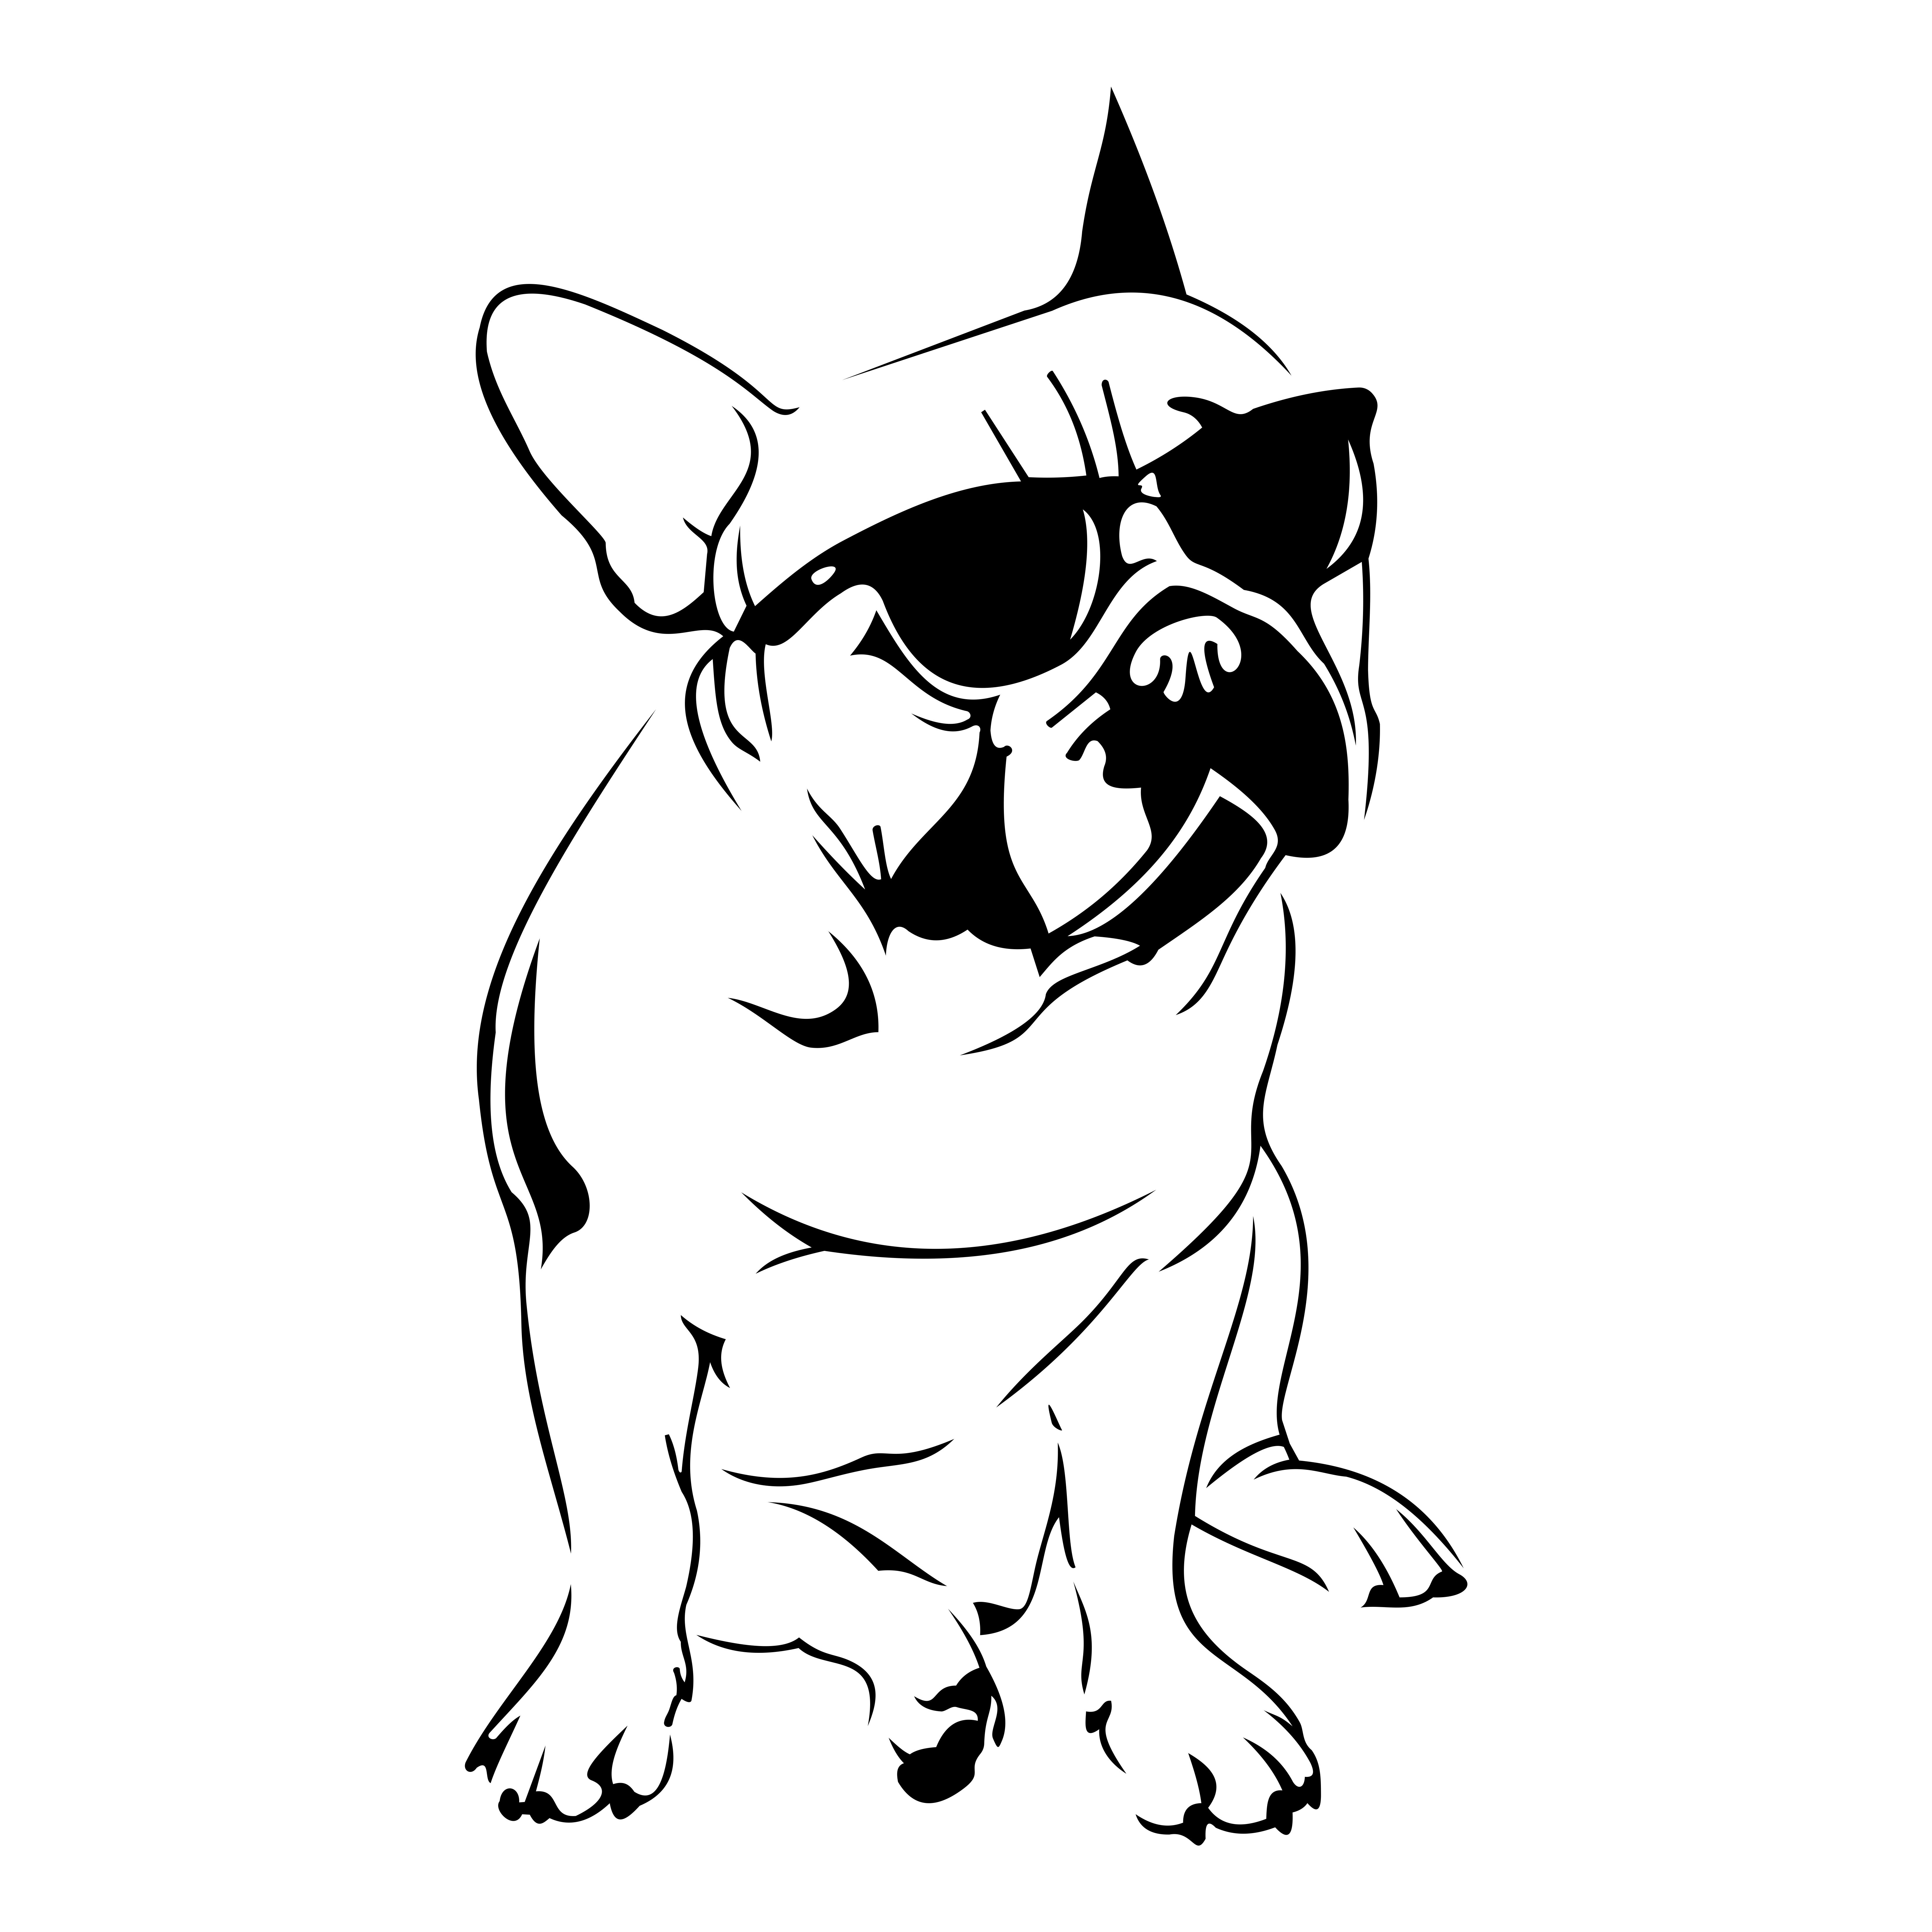 French Bulldog Design Svg Dxf Eps Cdr Ai Vector